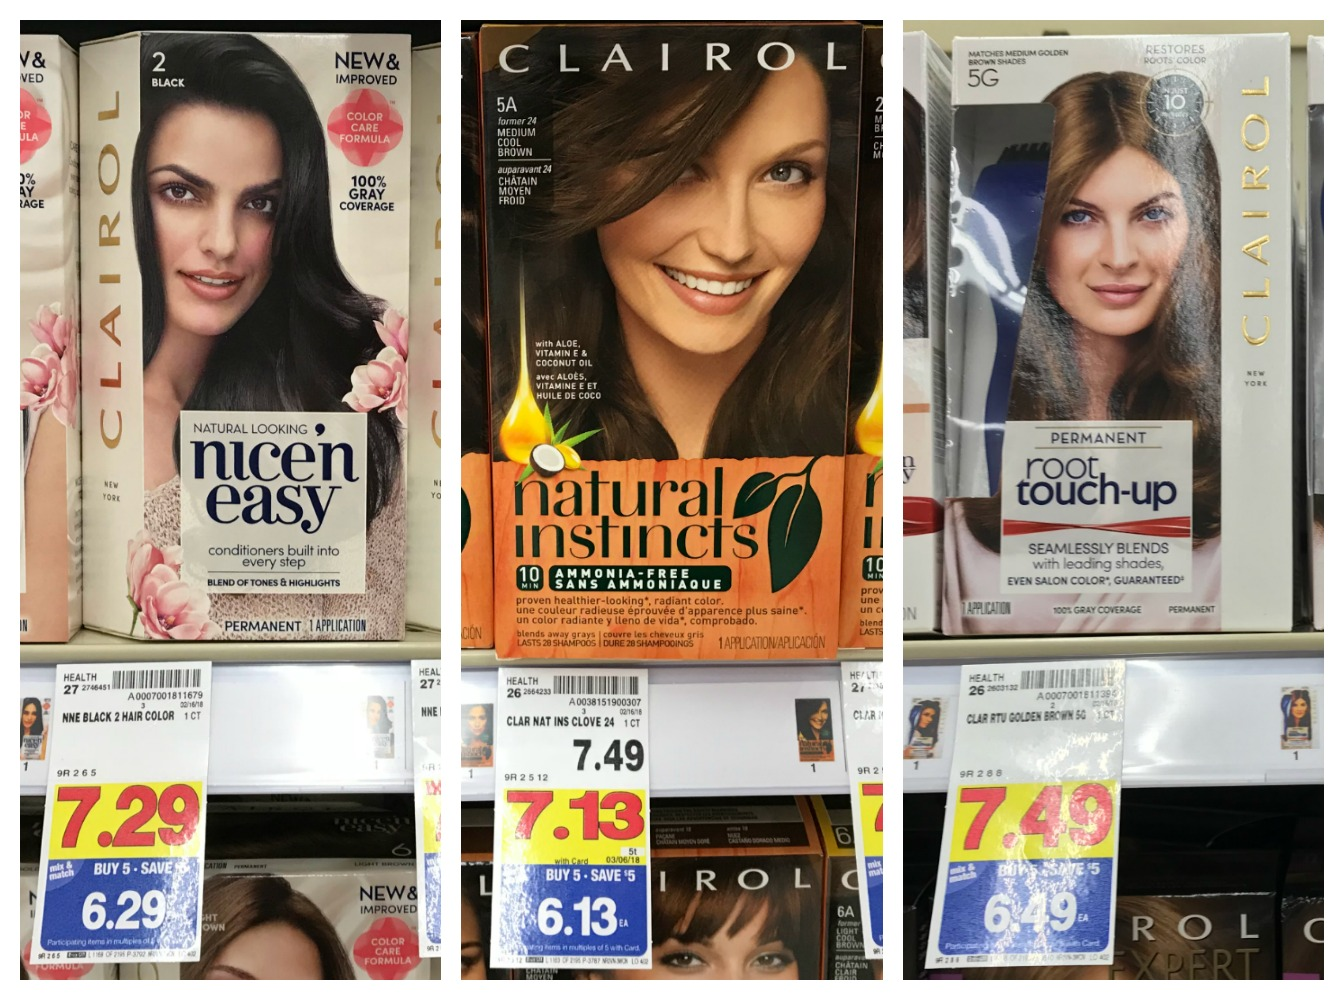 Clairol Nicen Easy Root Touch Up And Natural Instincts Hair Colors